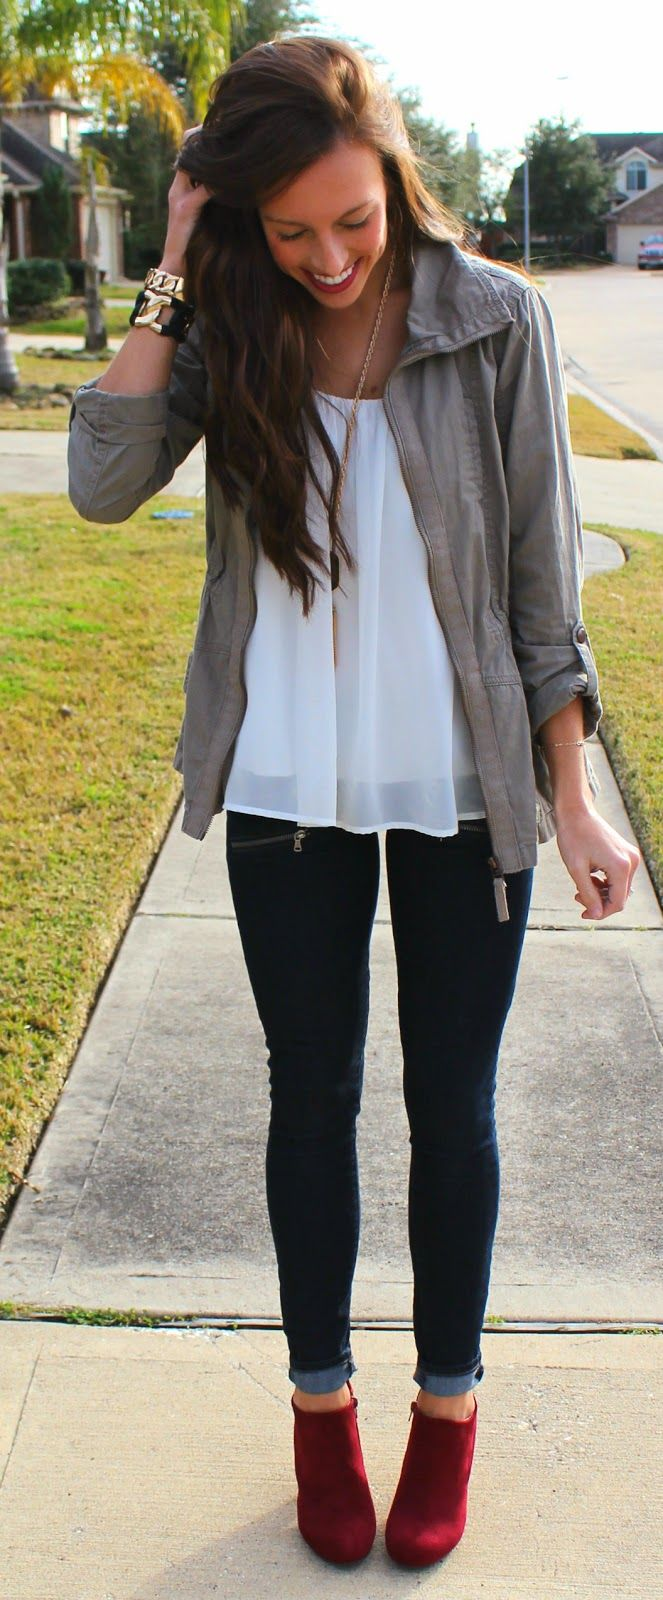 Really like the jacket, top and necklace. I like that these pieces would be versatile for all types of occasions